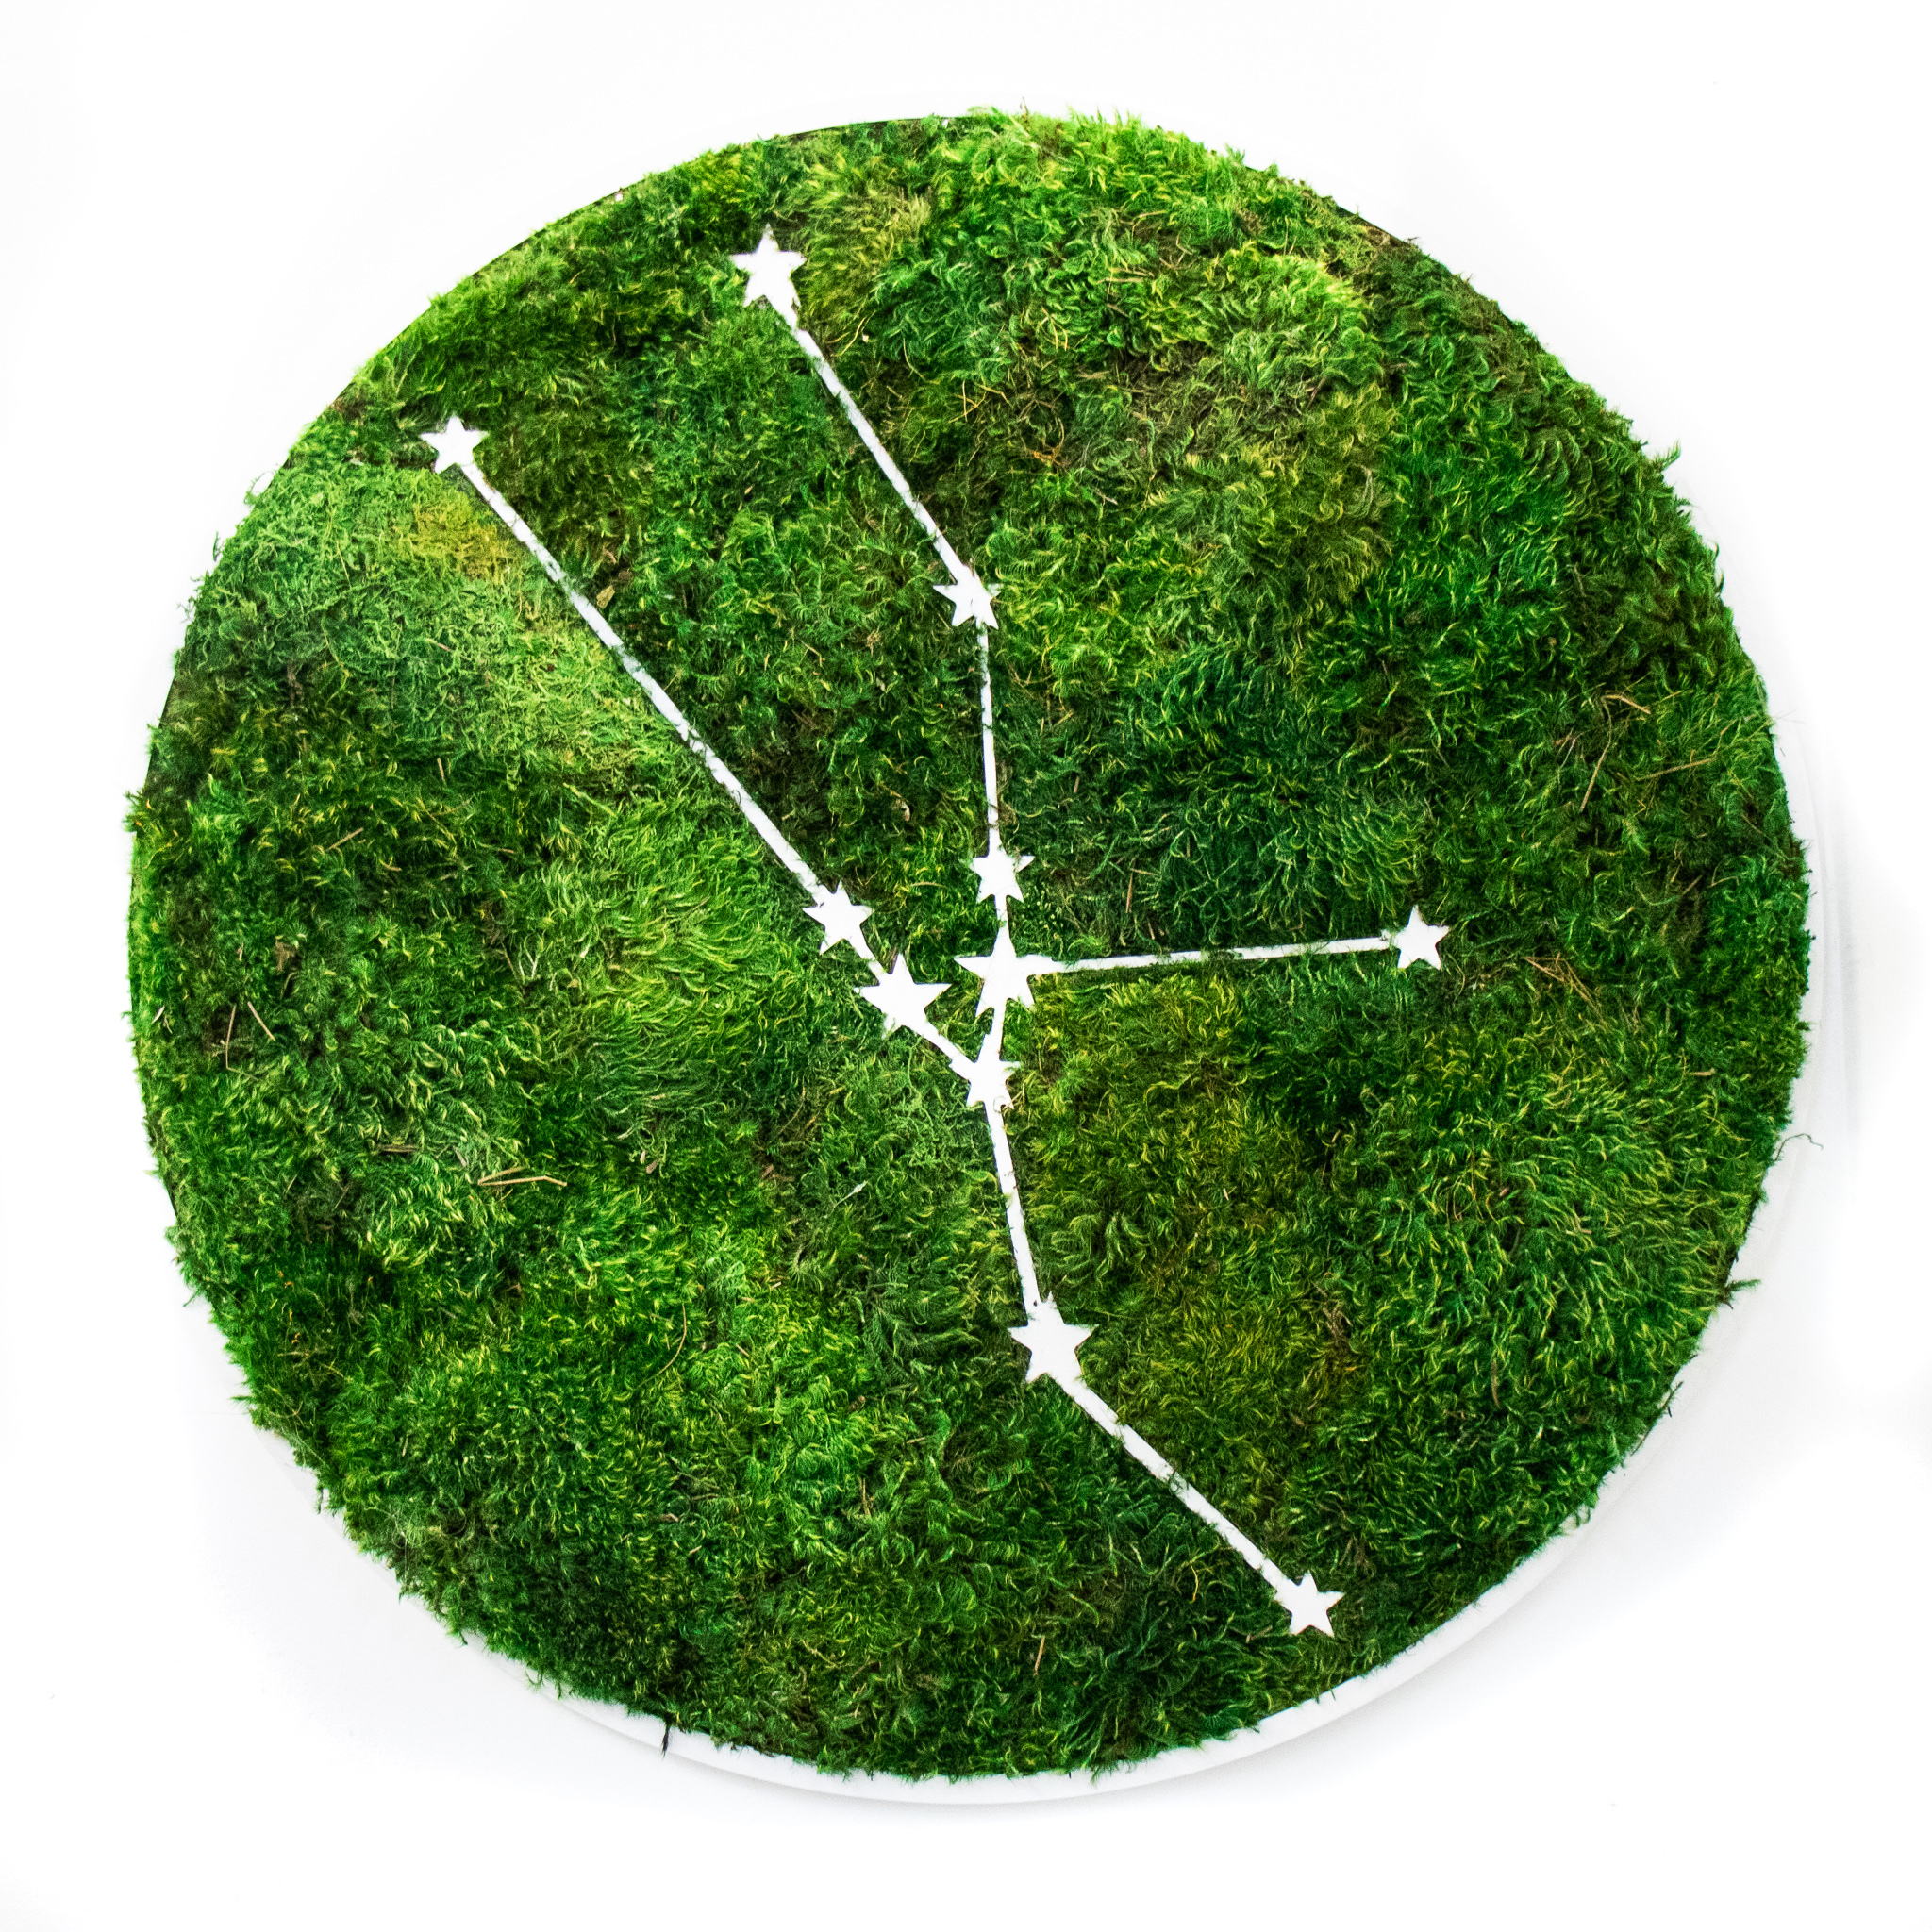 "Taurus Constellation - Moss Wall Art (30"" Diameter)"